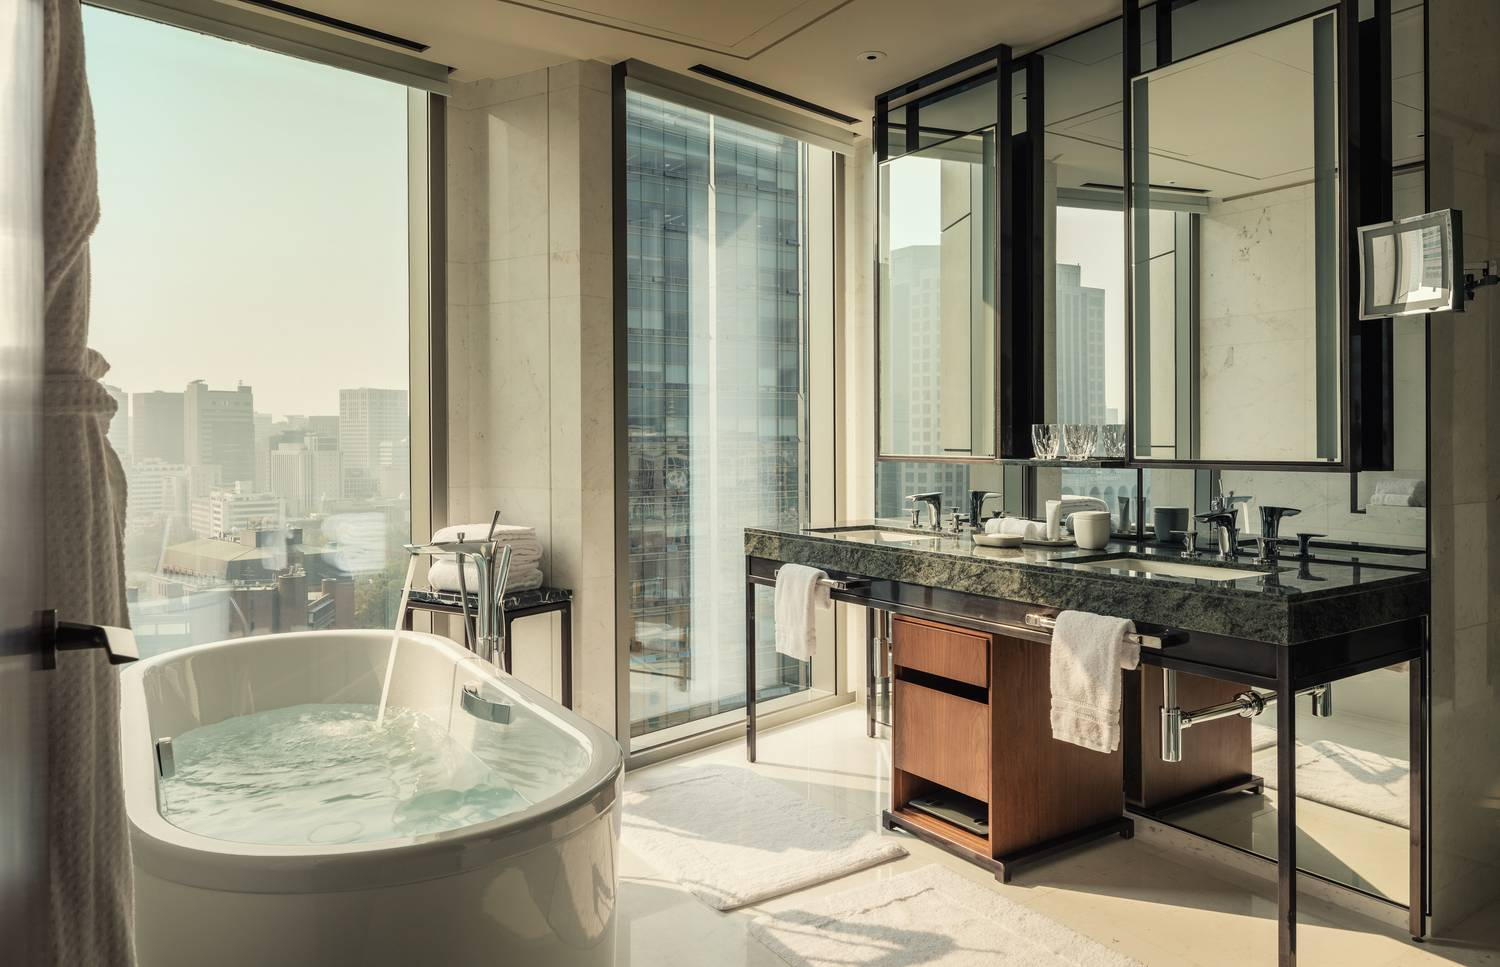 Accommodation details seoul luxury hotel accommodations rooms -  Din A4